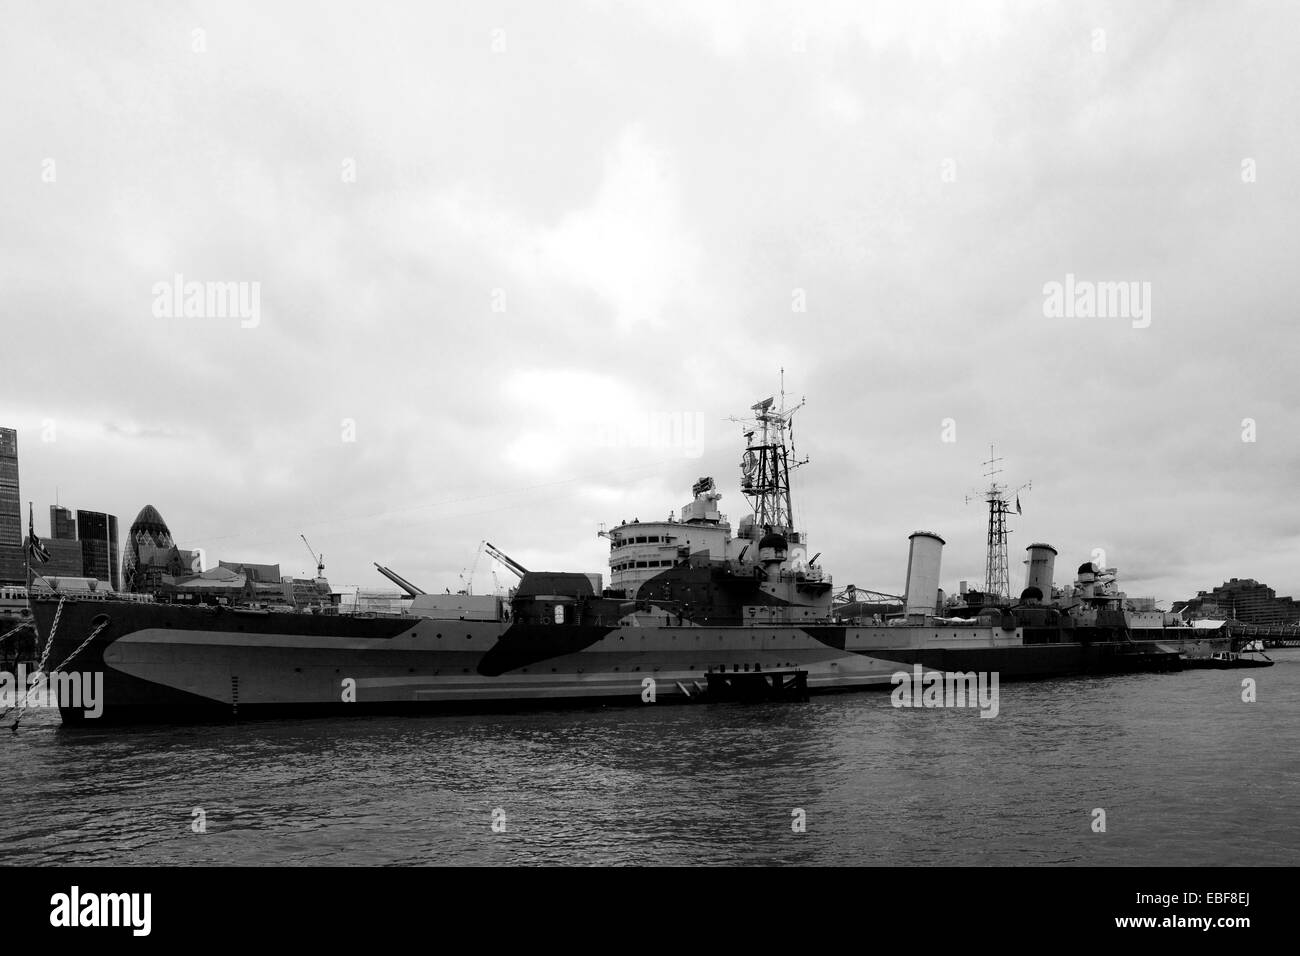 HMS Belfast in Black and White, river Thames, South Bank, London City, England, United Kingdom - Stock Image